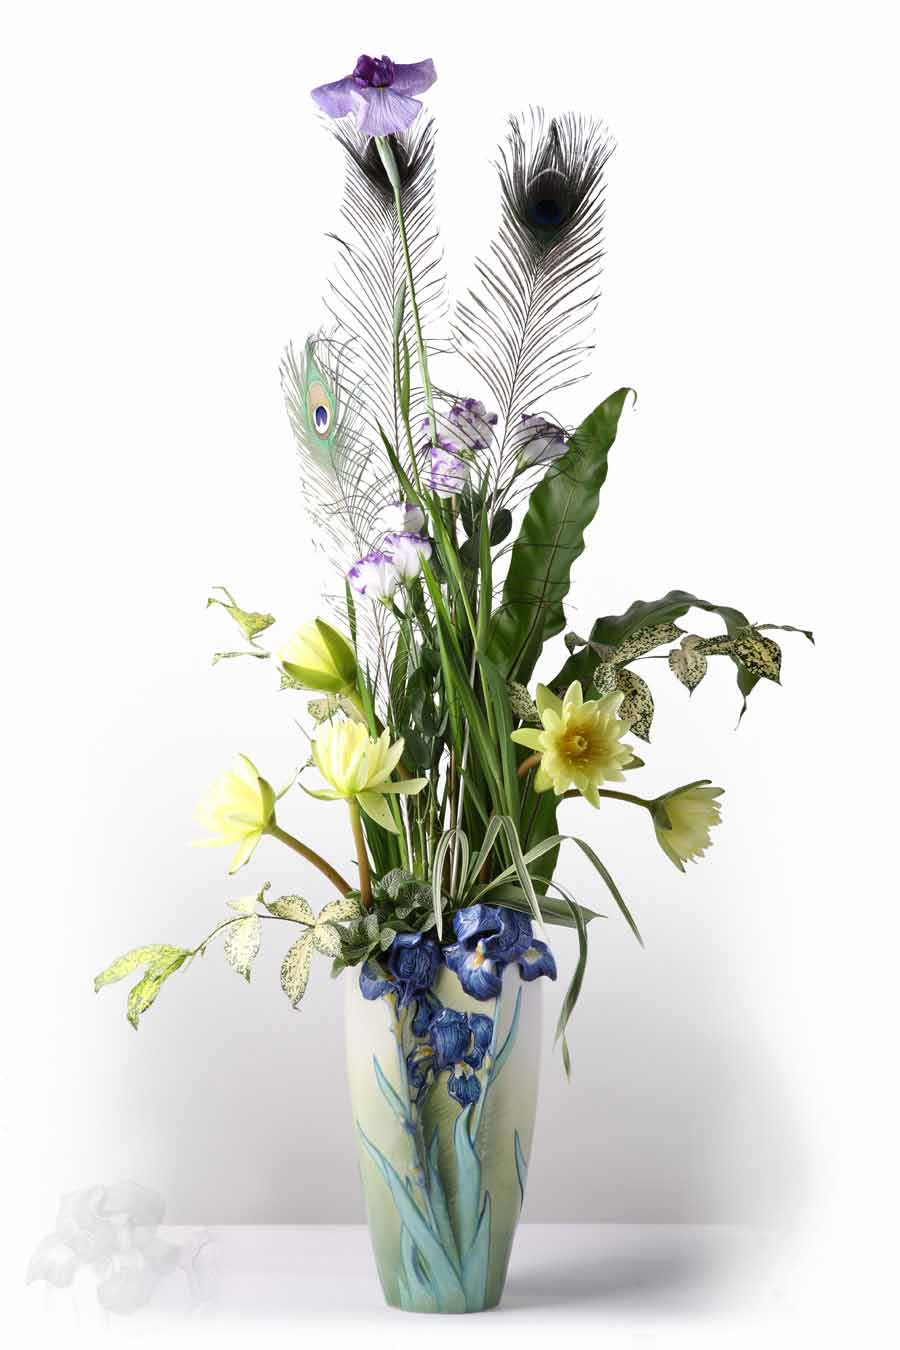 Floral design the magnificent iris vaseflower arrangement by andreas faber izmirmasajfo